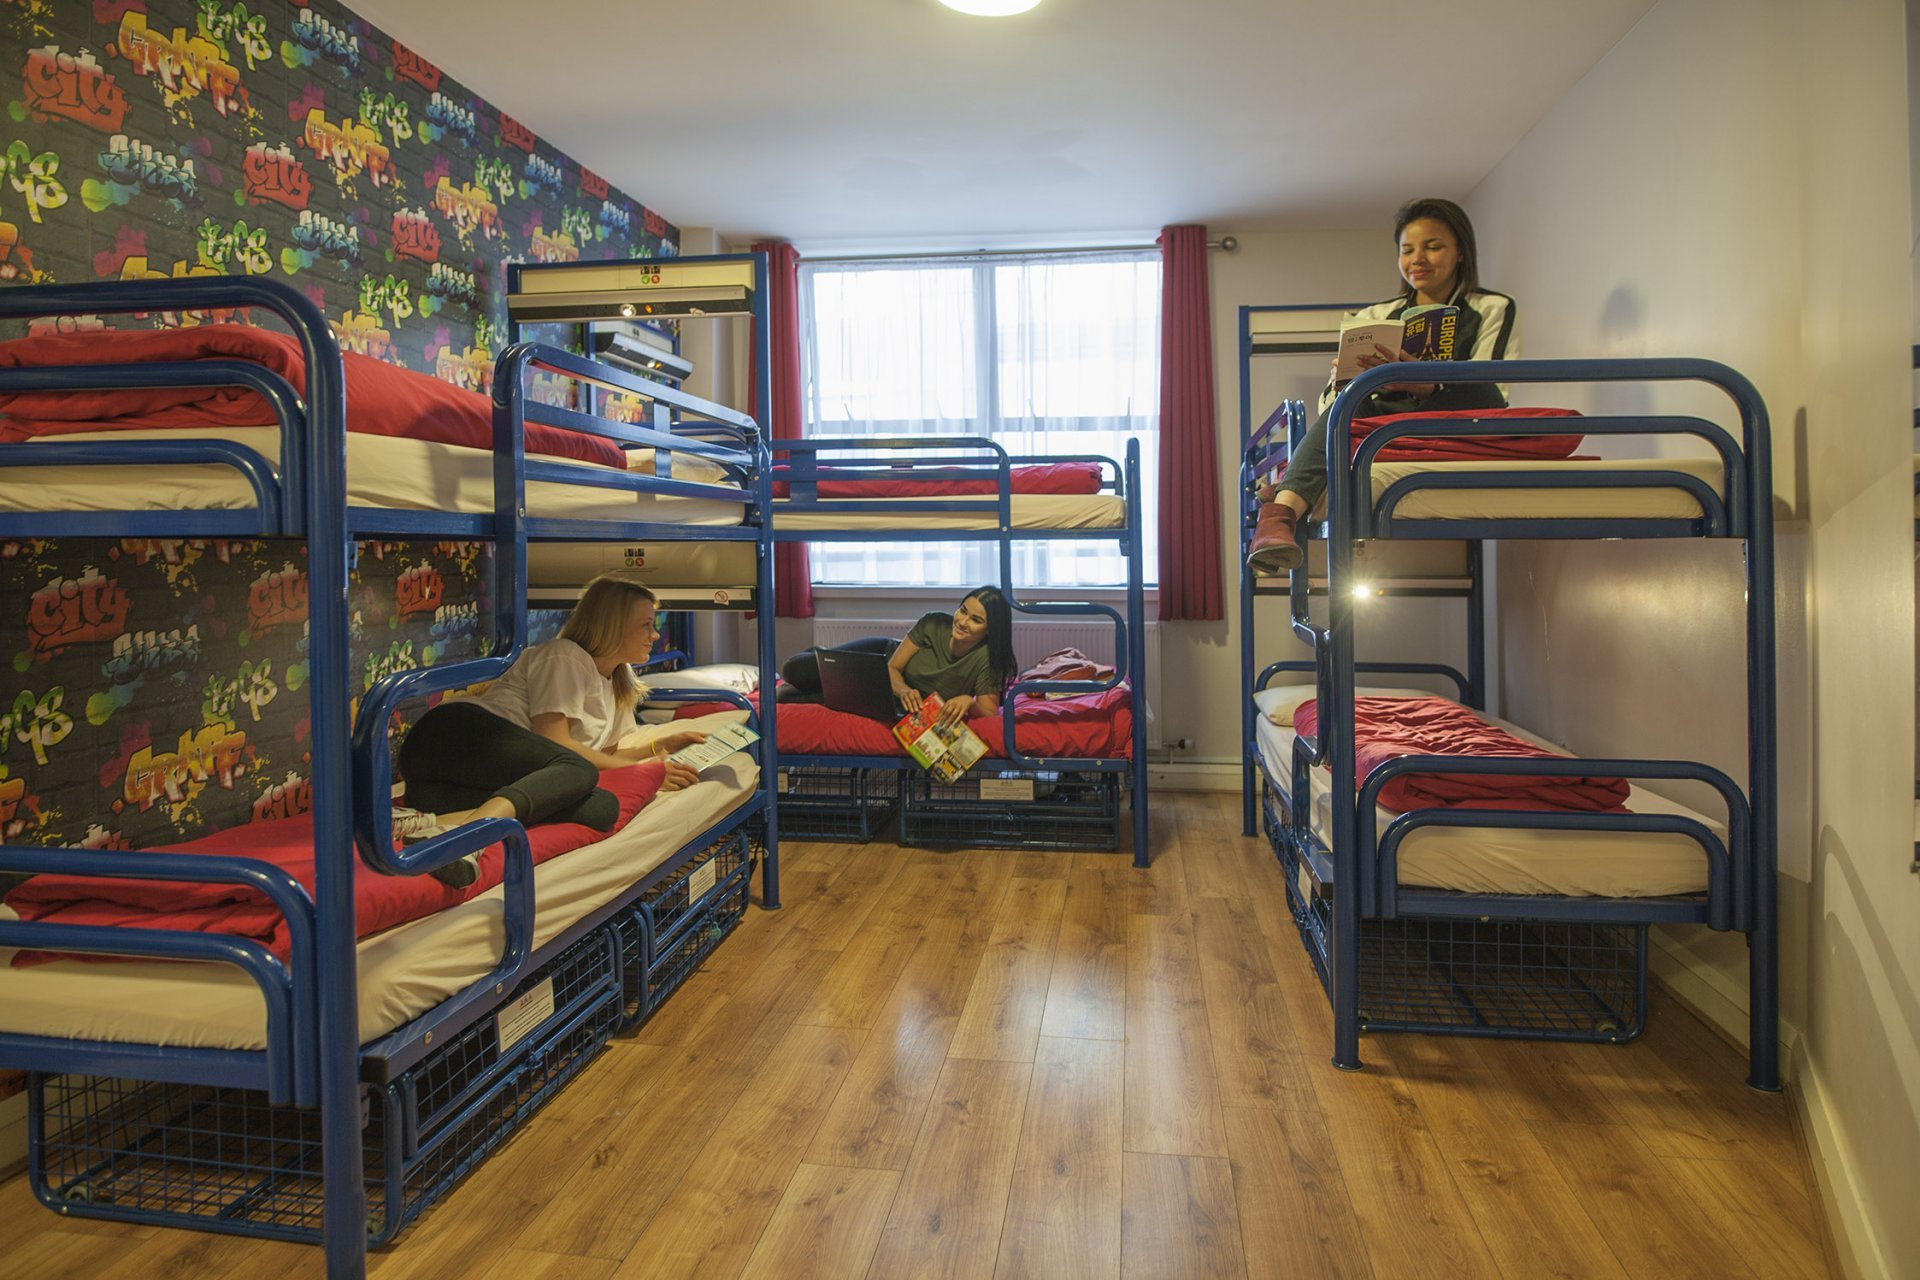 Guests From Group of Students on Bunk Beds in Youth Hostel 6 Bed Room